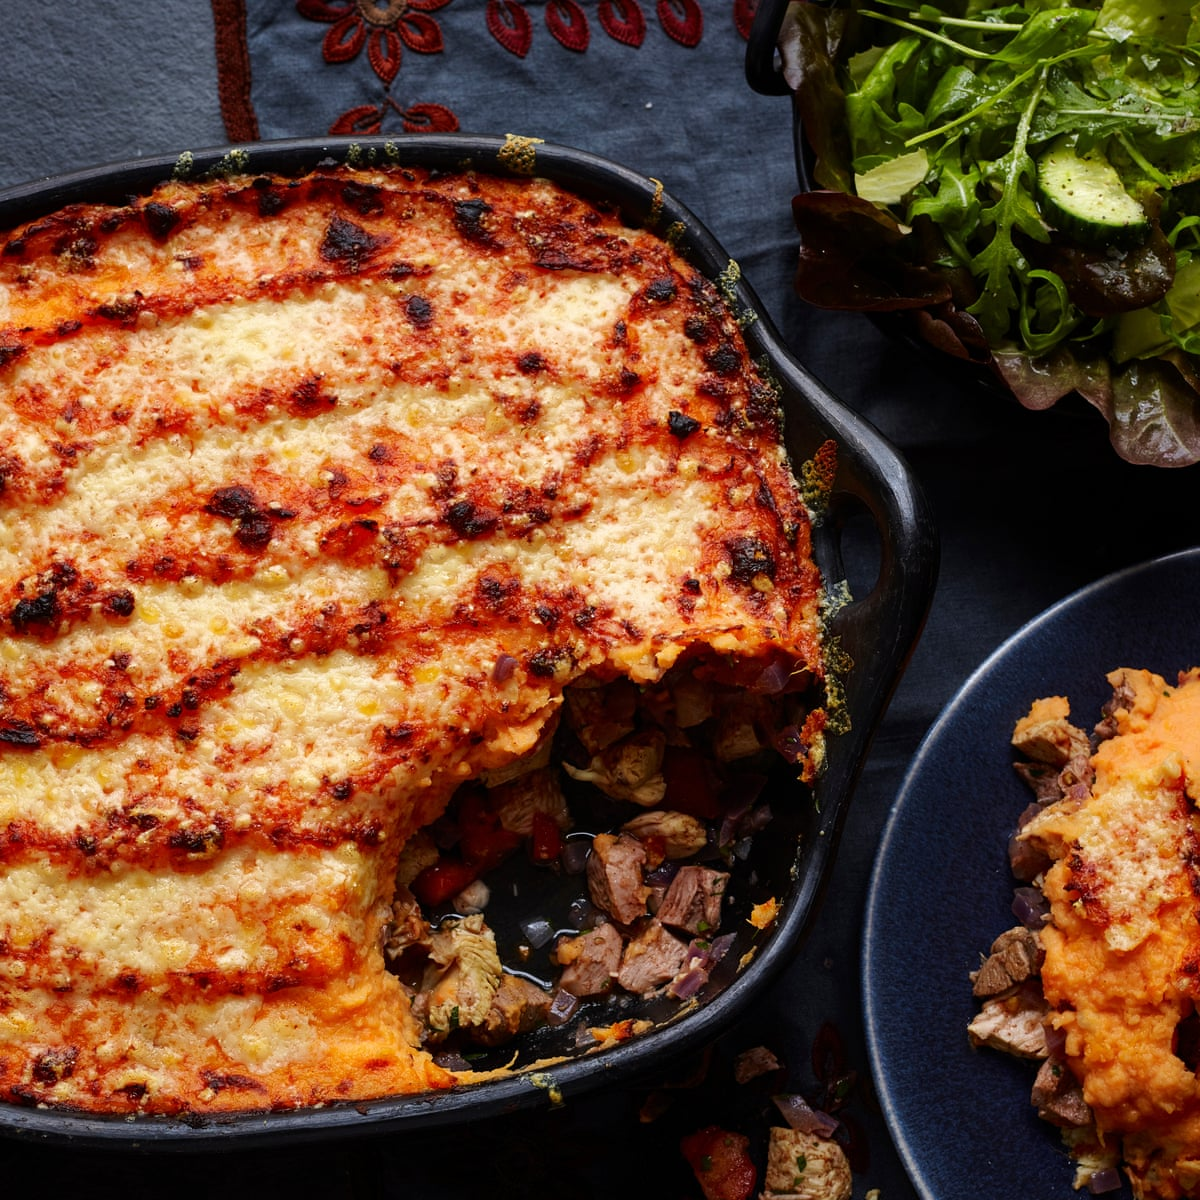 17 Ways With Leftover Turkey From Warming Ramen To Rich Risotto Christmas Food And Drink The Guardian